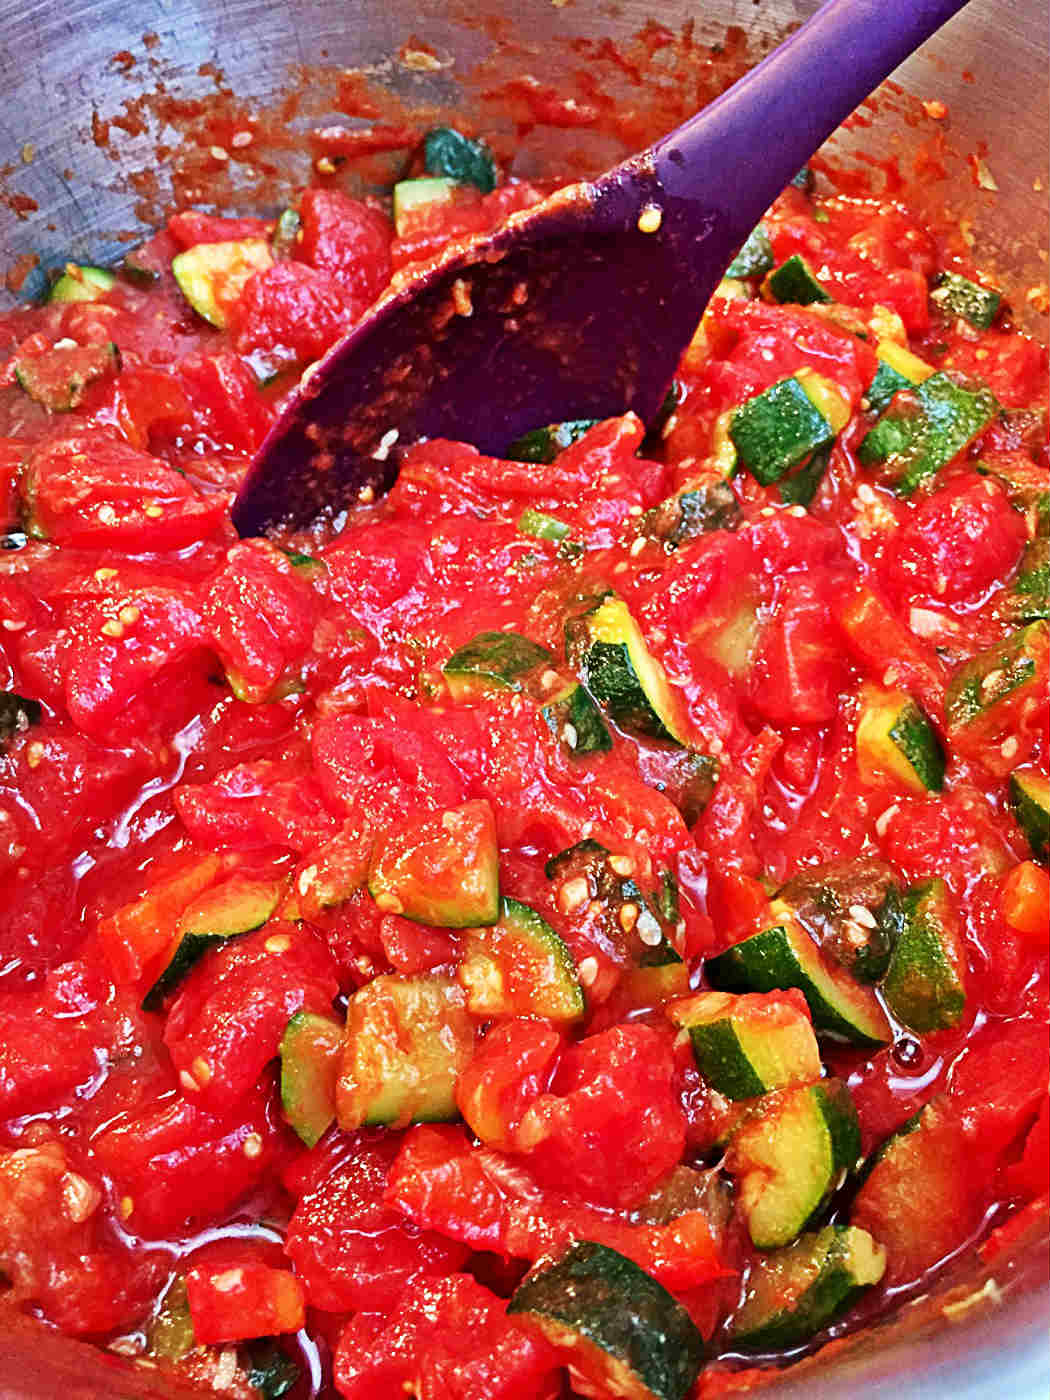 Image of canned diced tomatoes and zucchini in the large pot